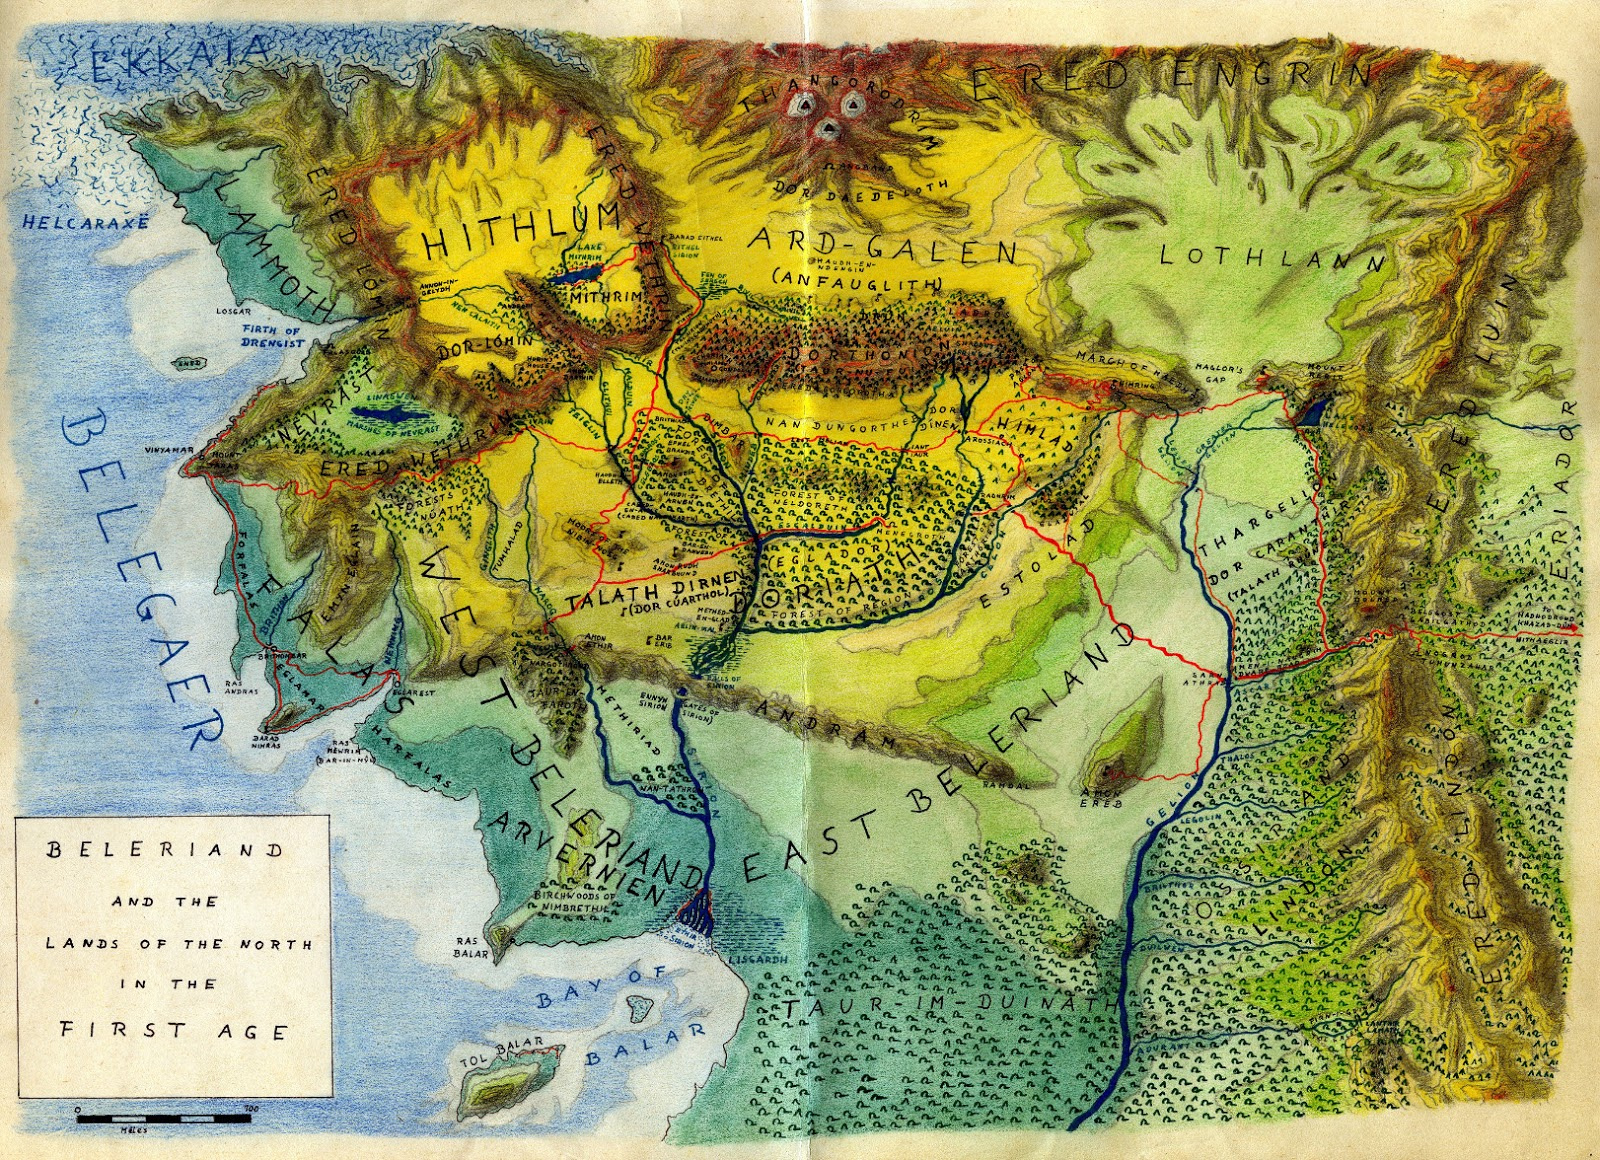 beleriand2bgb map of beleriand and